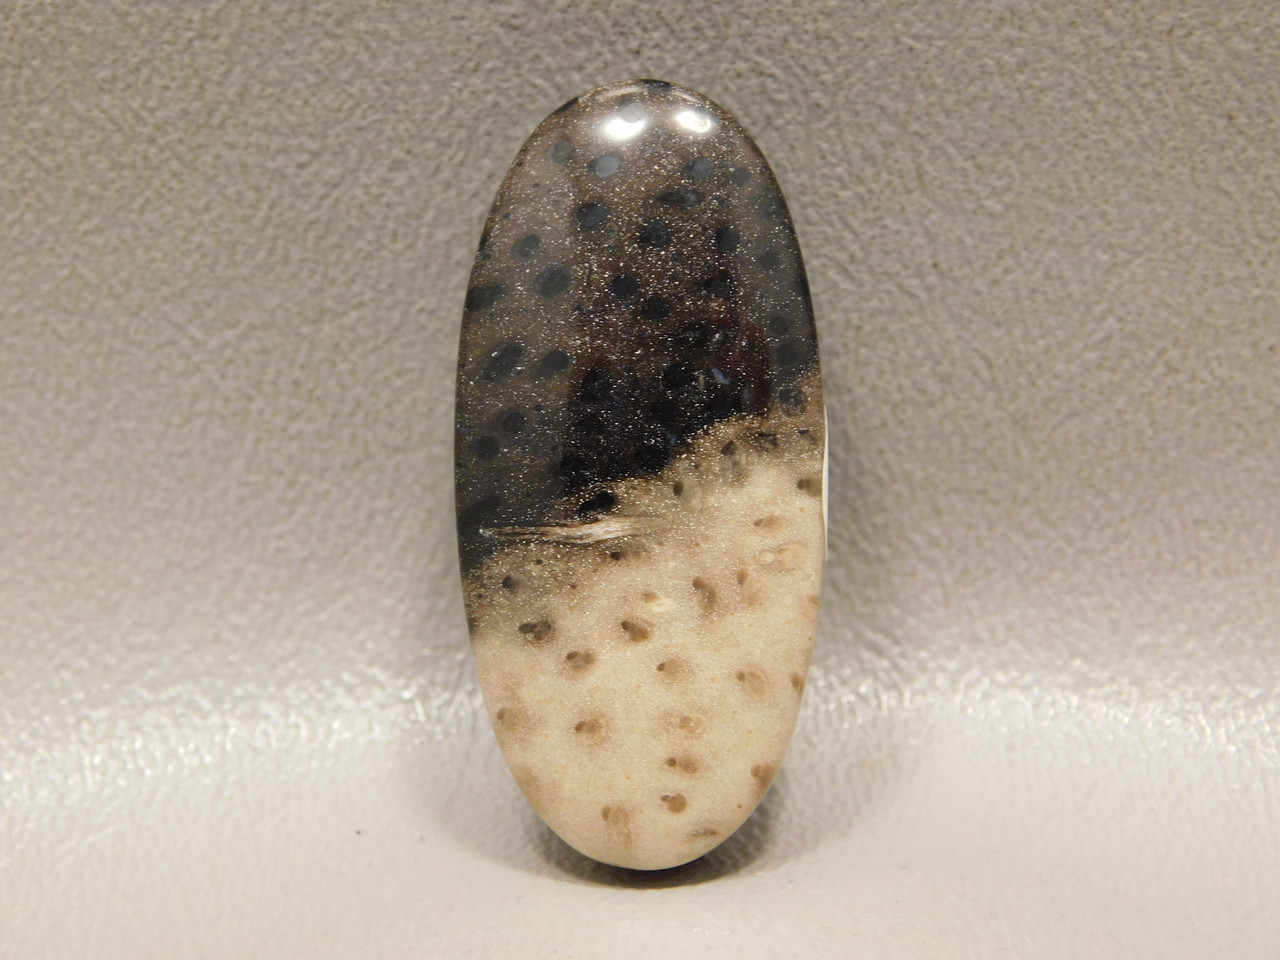 Fossilized Palm Wood Polka Dot Side Drilled Stone Bead Pendant #7